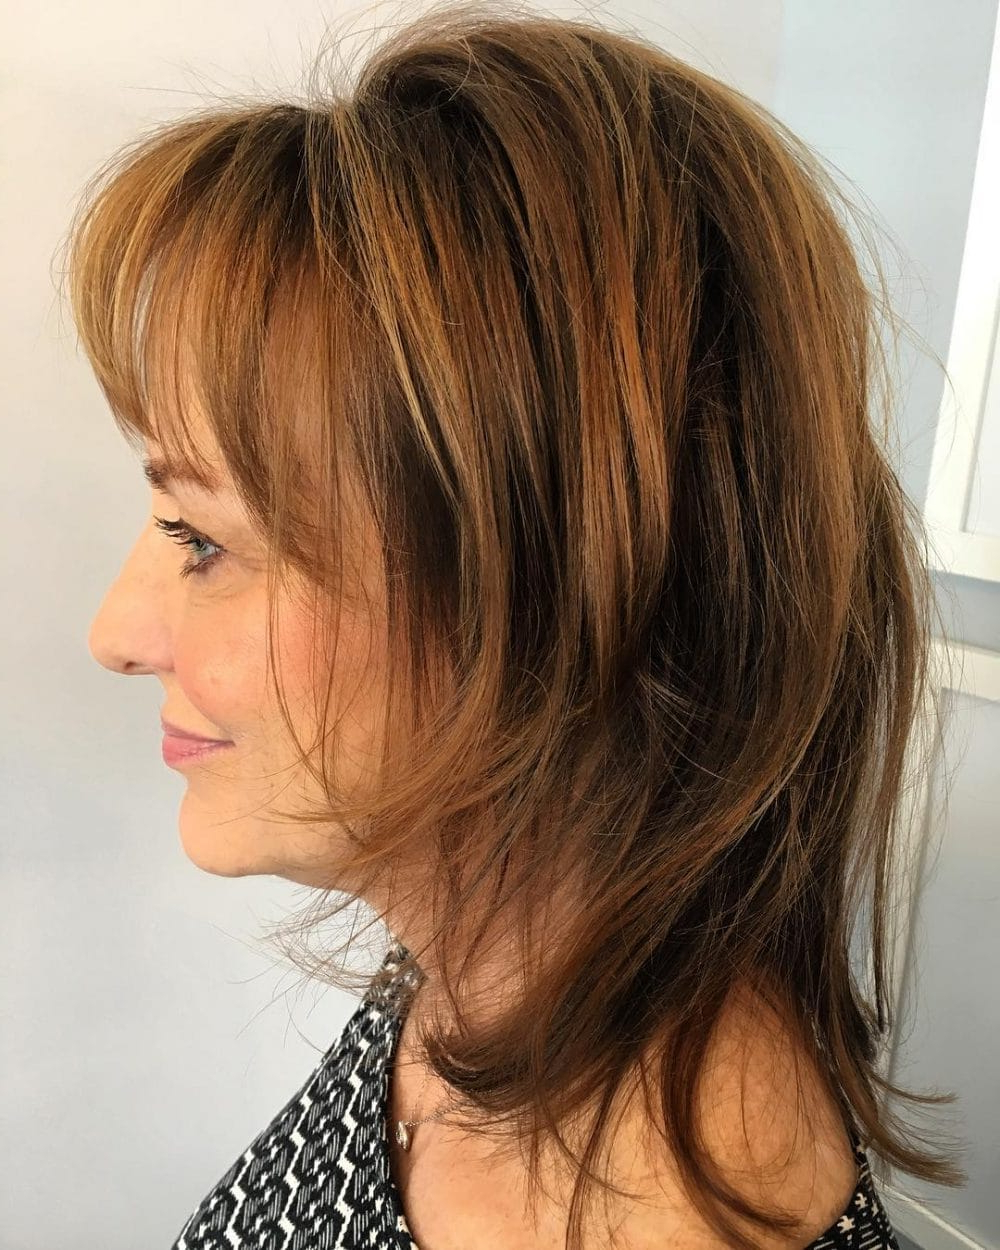 2019 Long Feathered Shag Haircuts For Fine Hair Regarding 26 Modern Shag Haircuts To Try In (View 7 of 20)